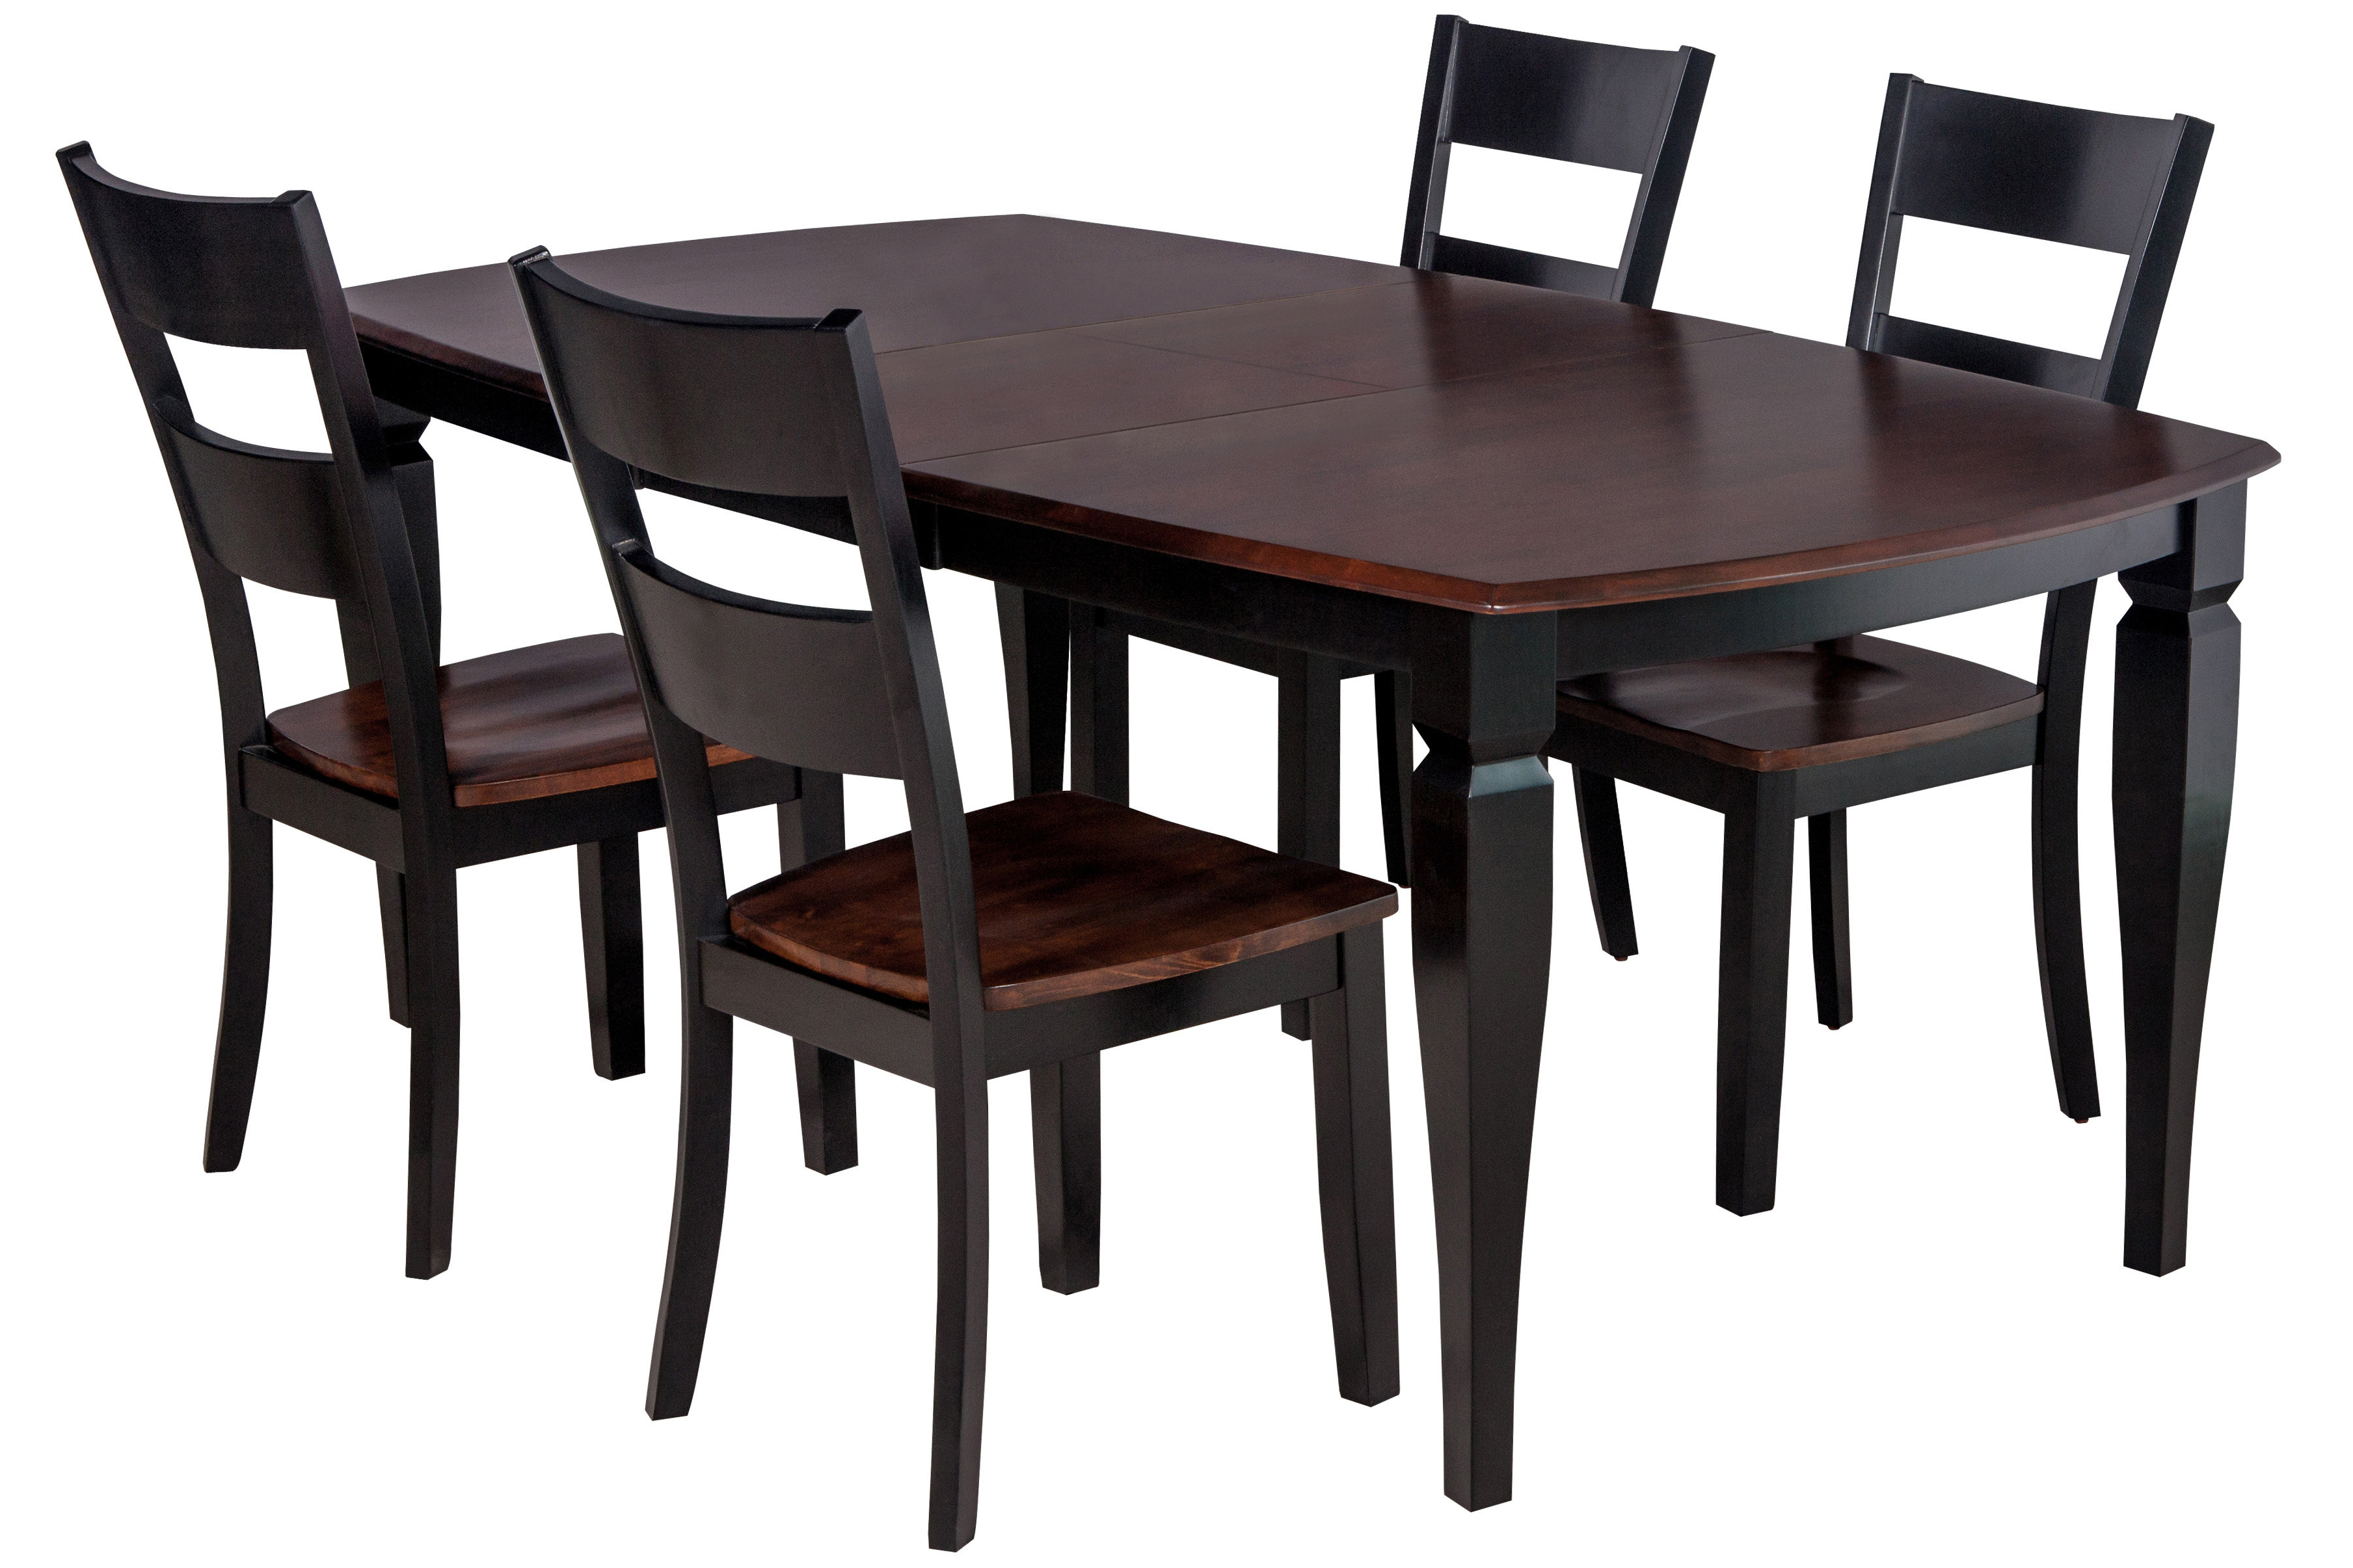 Adan 5 Piece Solid Wood Dining Sets (Set Of 5) Pertaining To Preferred Ttpfurnish Victoria 5 Piece Solid Wood Dining Set (View 15 of 25)